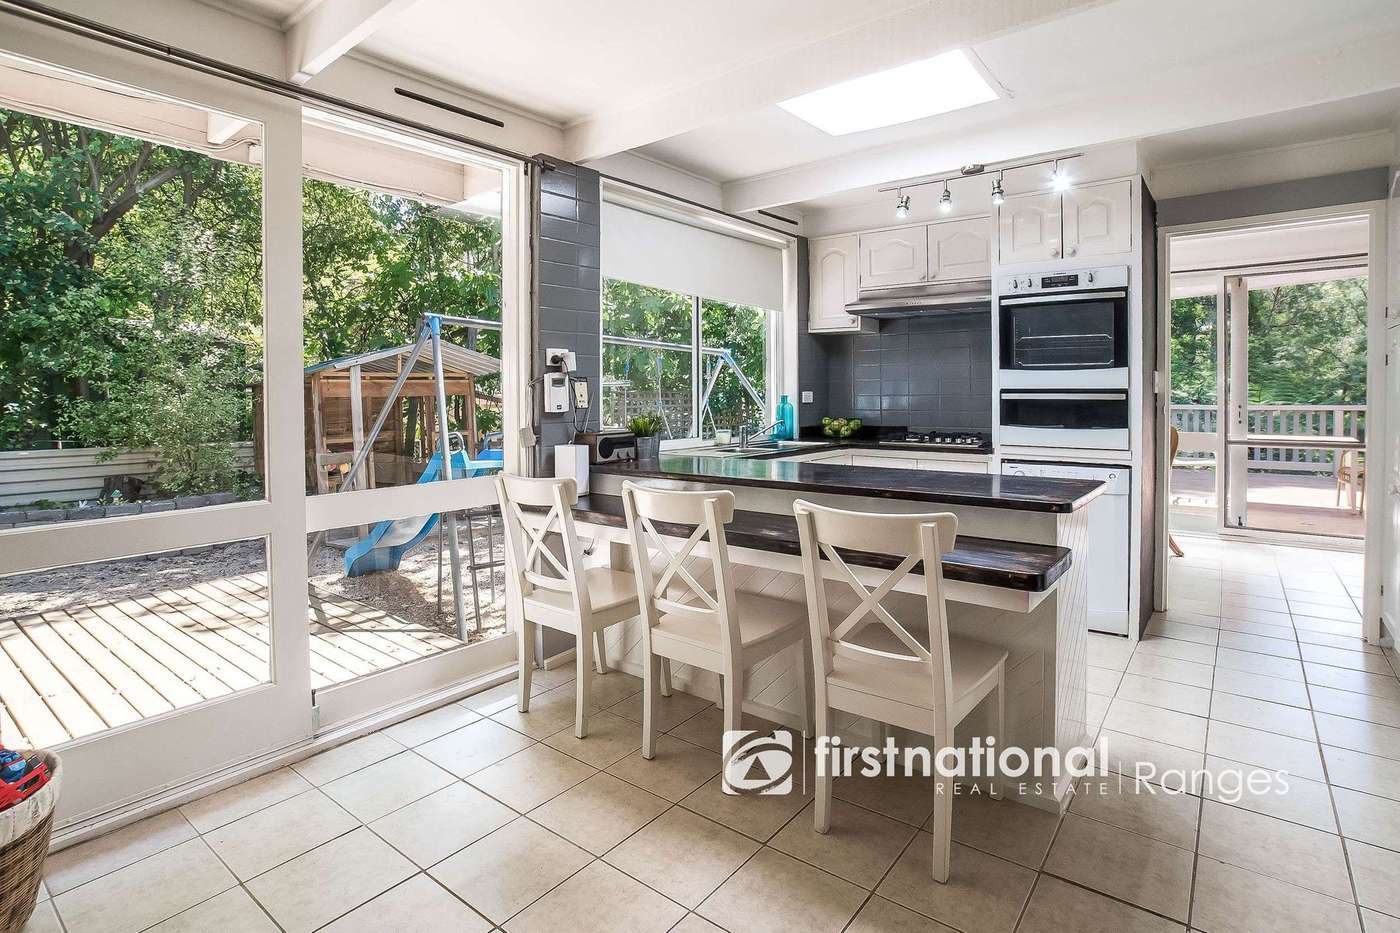 Main view of Homely house listing, 97 Mt Pleasant Road, Monbulk, VIC 3793